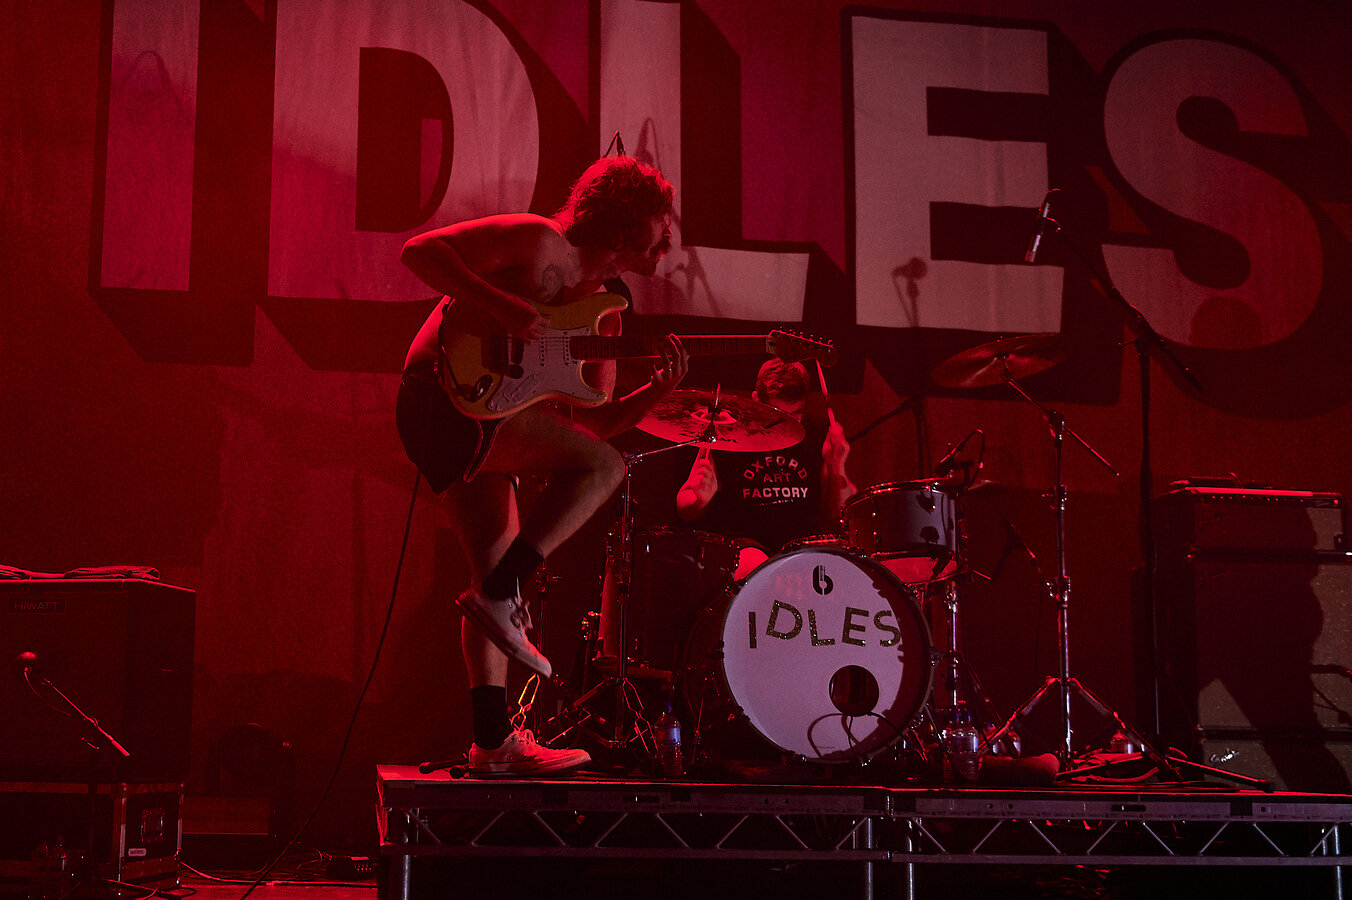 The Idles